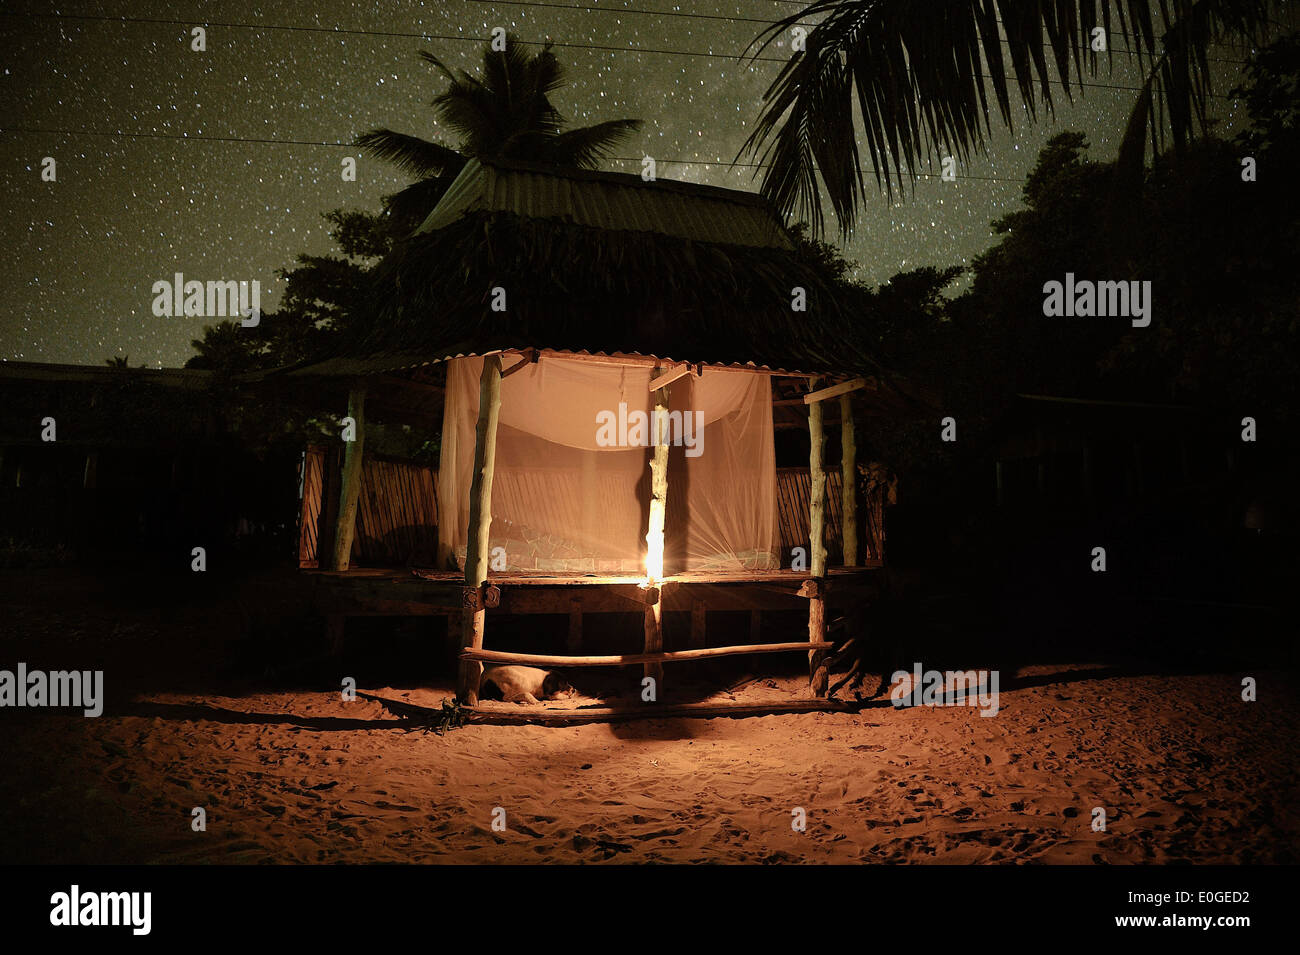 Stars above a fale, traditional samoan accomodation without walls, Return to Paradise Beach, Upolu, Samoa, South Pacific - Stock Image